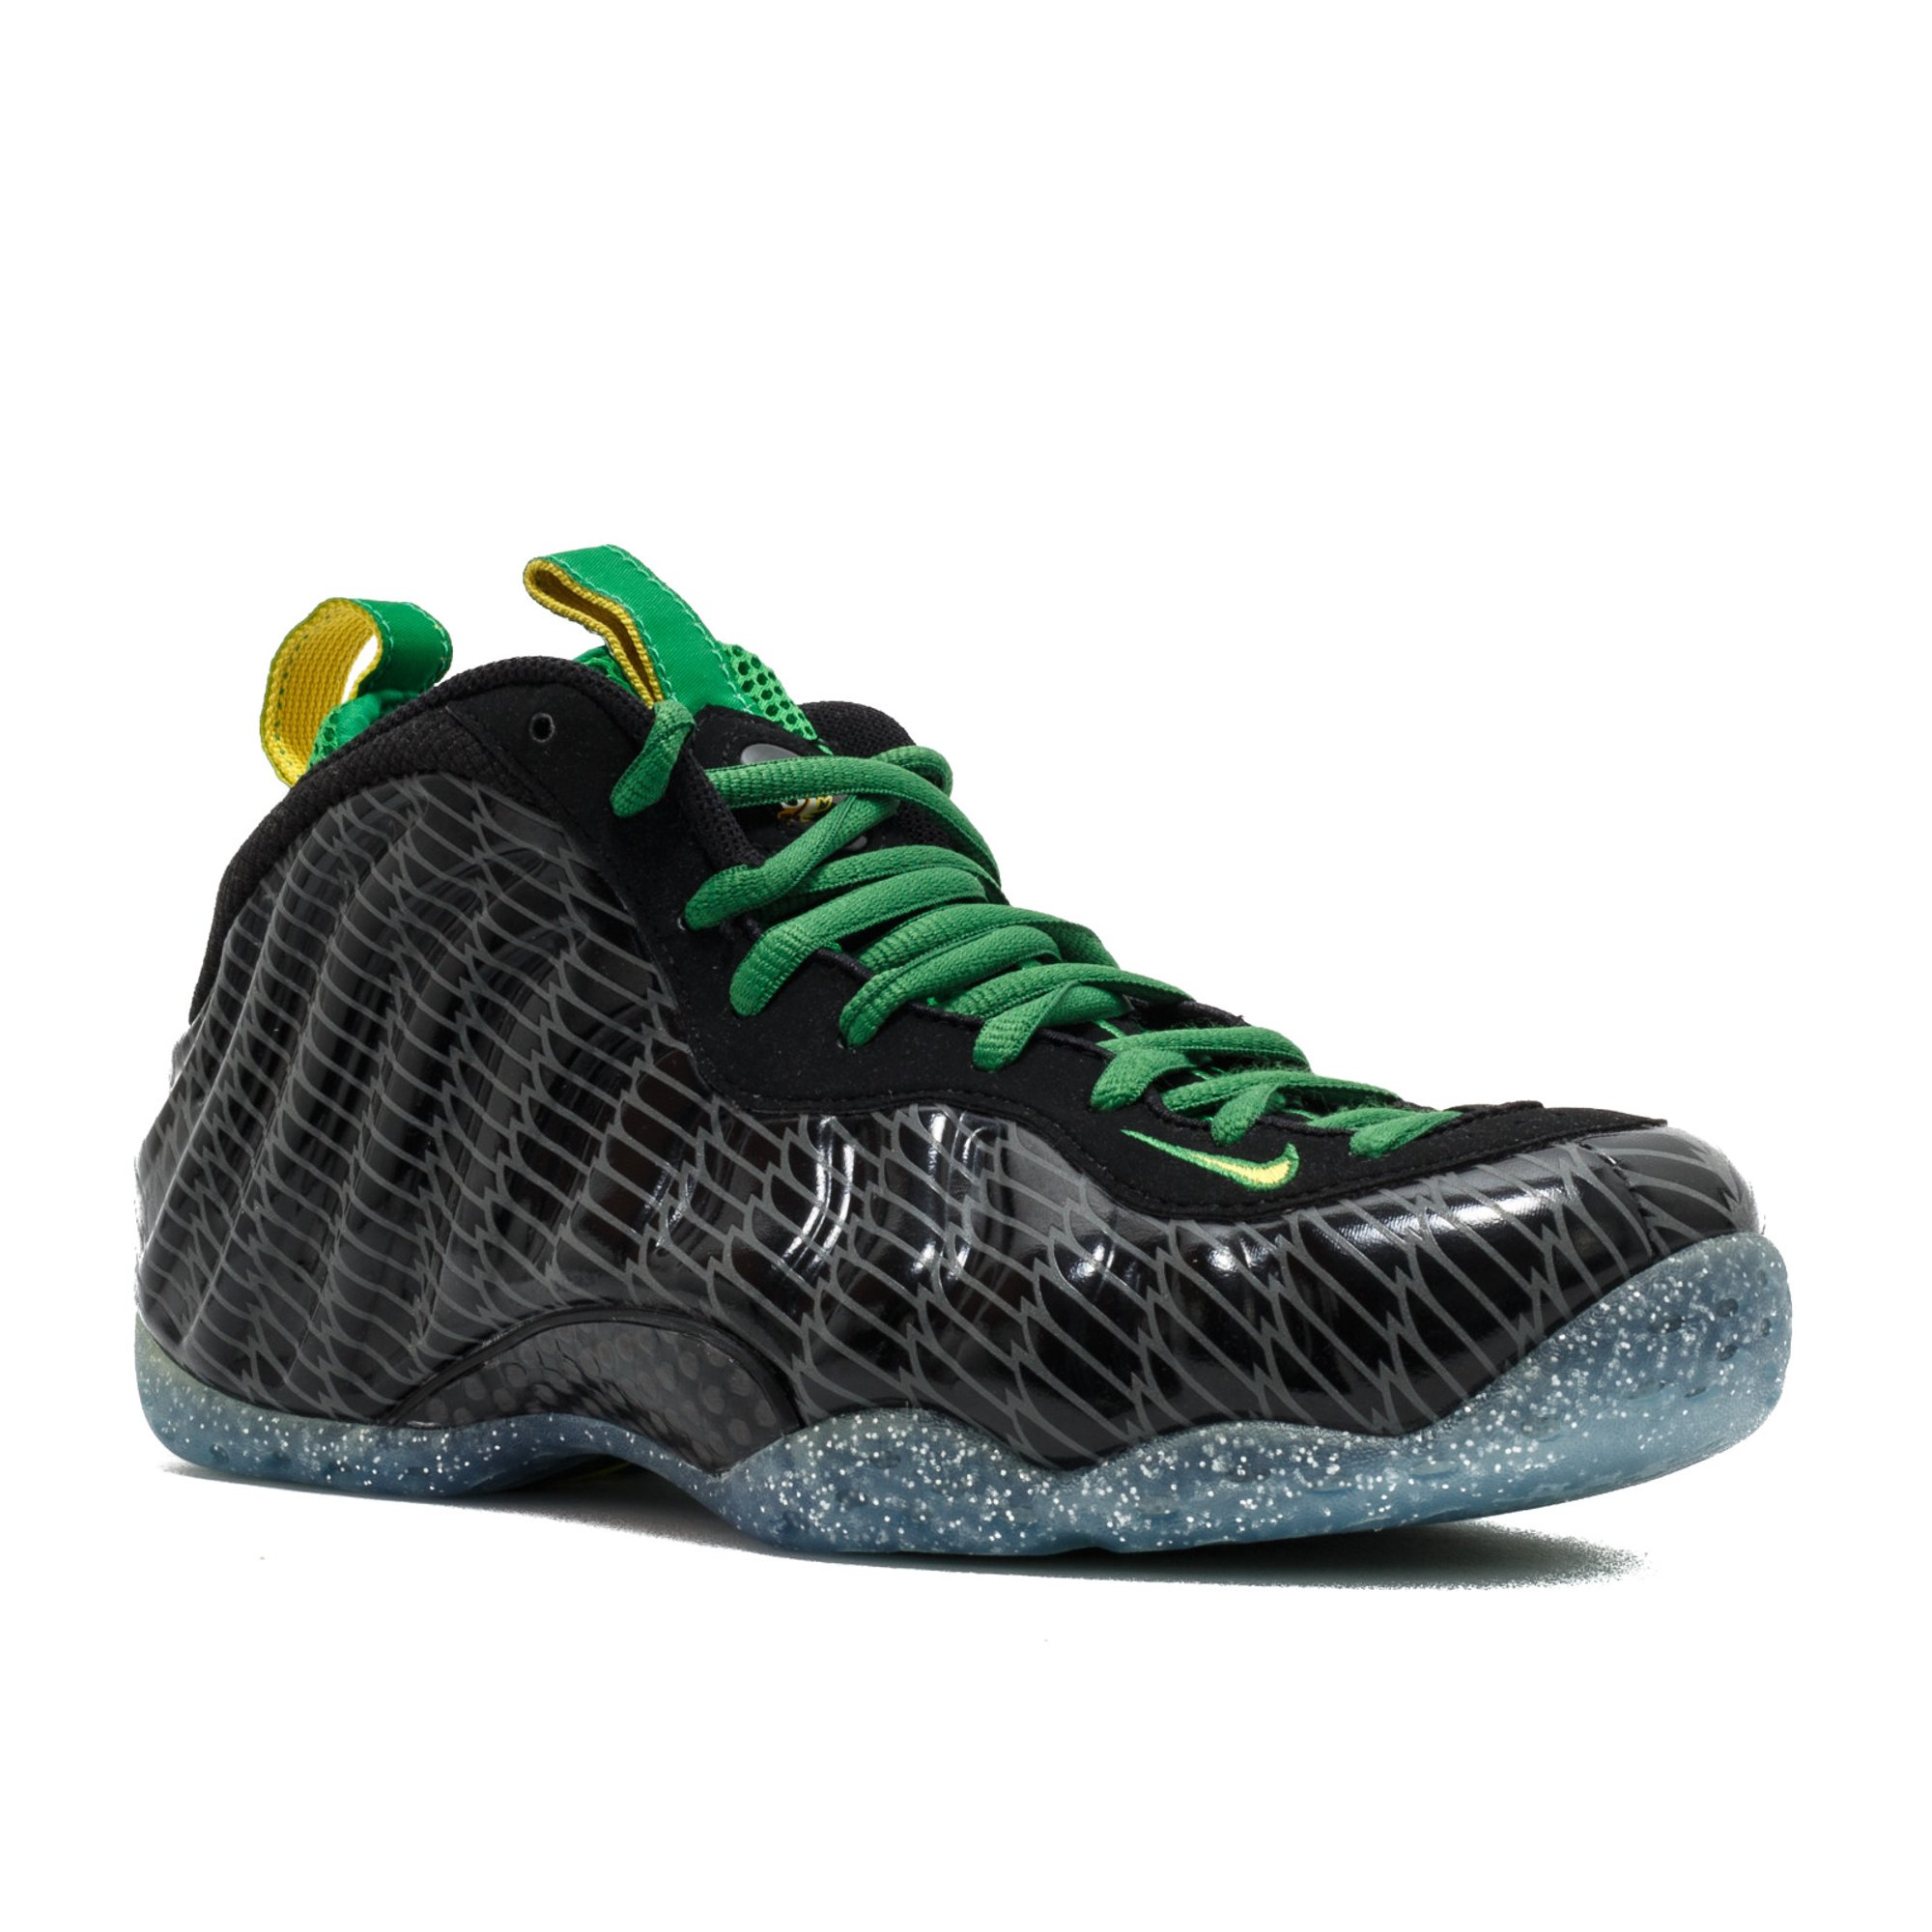 99029bfb928 Nike - Men - Nike Air Foamposite One Prm Uo Qs  Oregon Ducks  - 652110-001  - Size 7.5